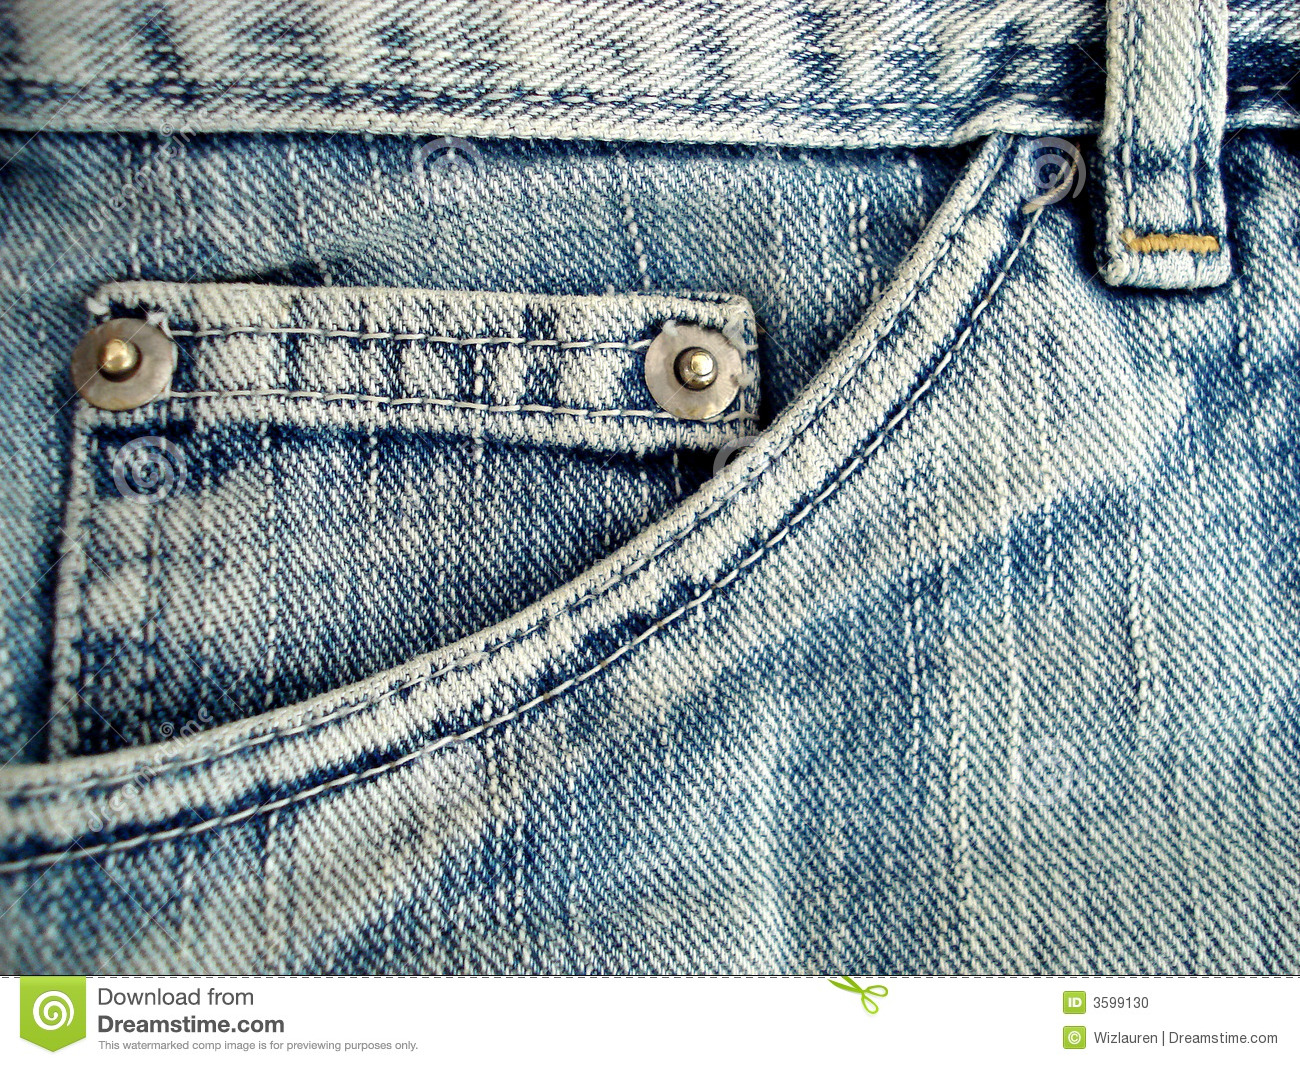 Jeans pocket detail stock photo. Image of washed, clothe ...